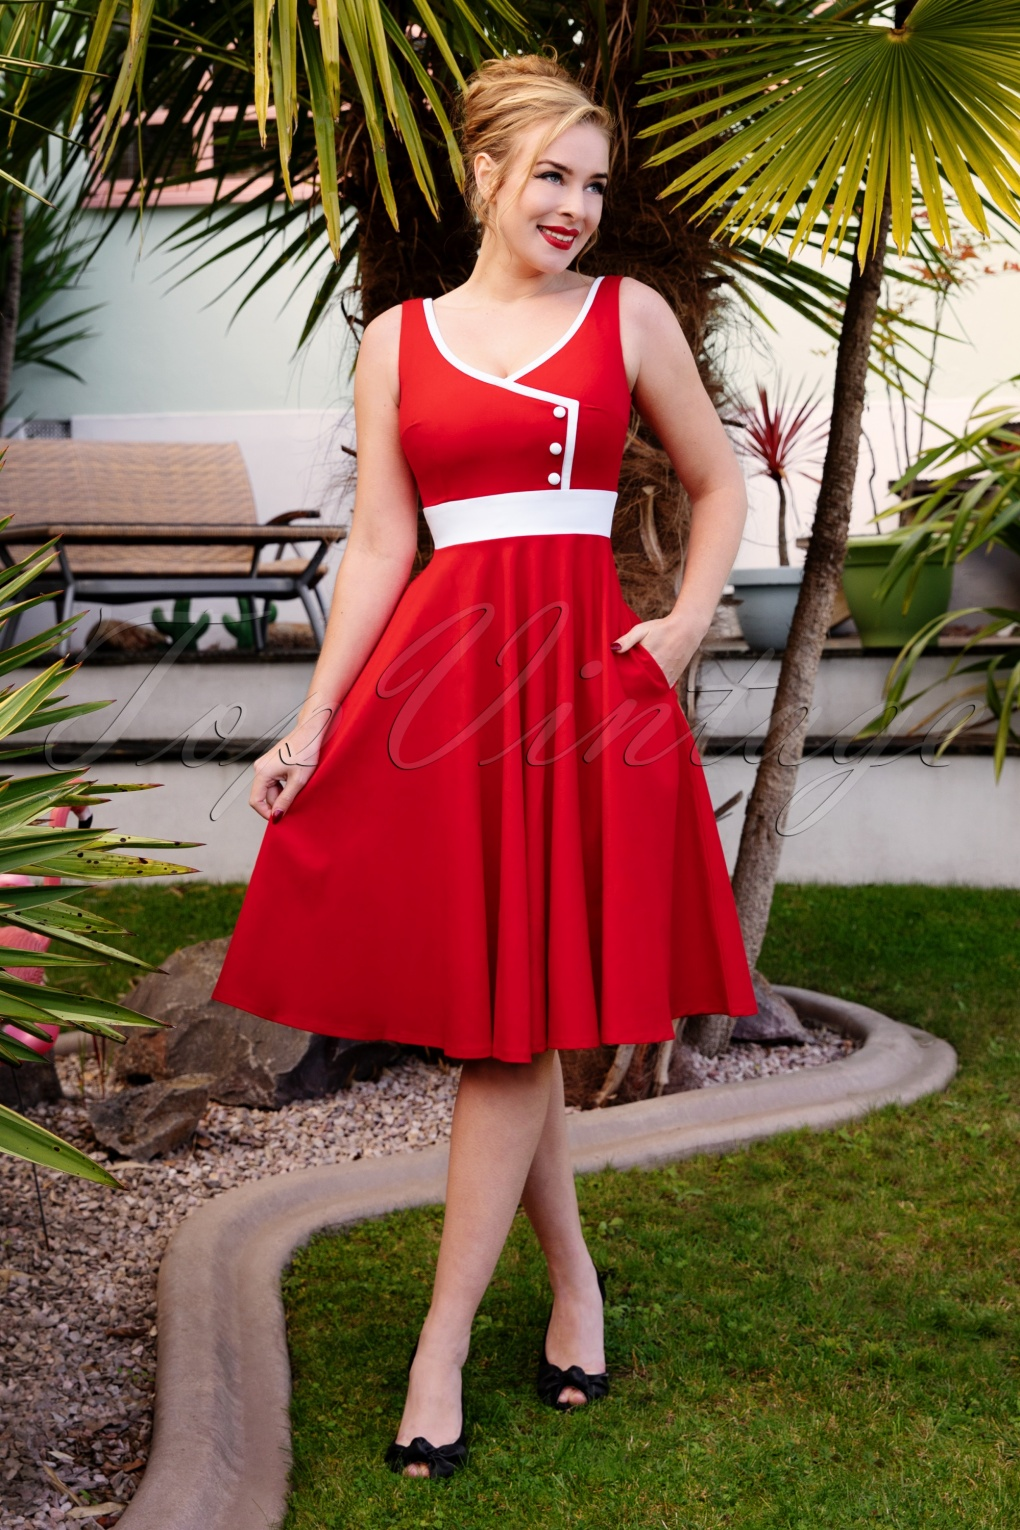 1950s Dresses, 50s Dresses | 1950s Style Dresses 50s Willow Swing Dress in Lipstick Red £19.95 AT vintagedancer.com